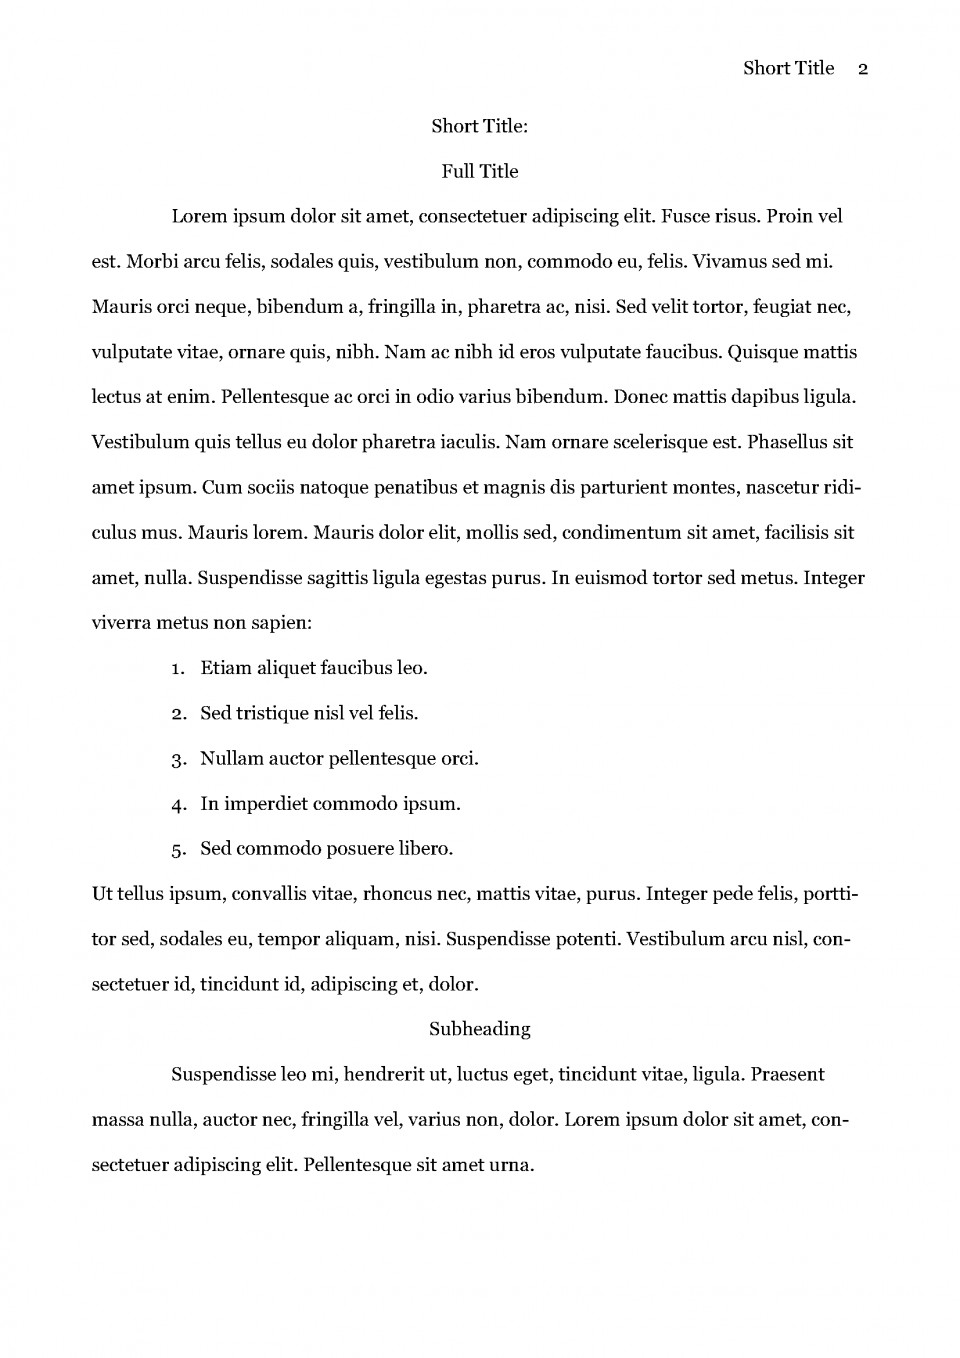 017 Essay Example Apa Sample Page 2 Format Stupendous Template Short Title 6th Edition 960